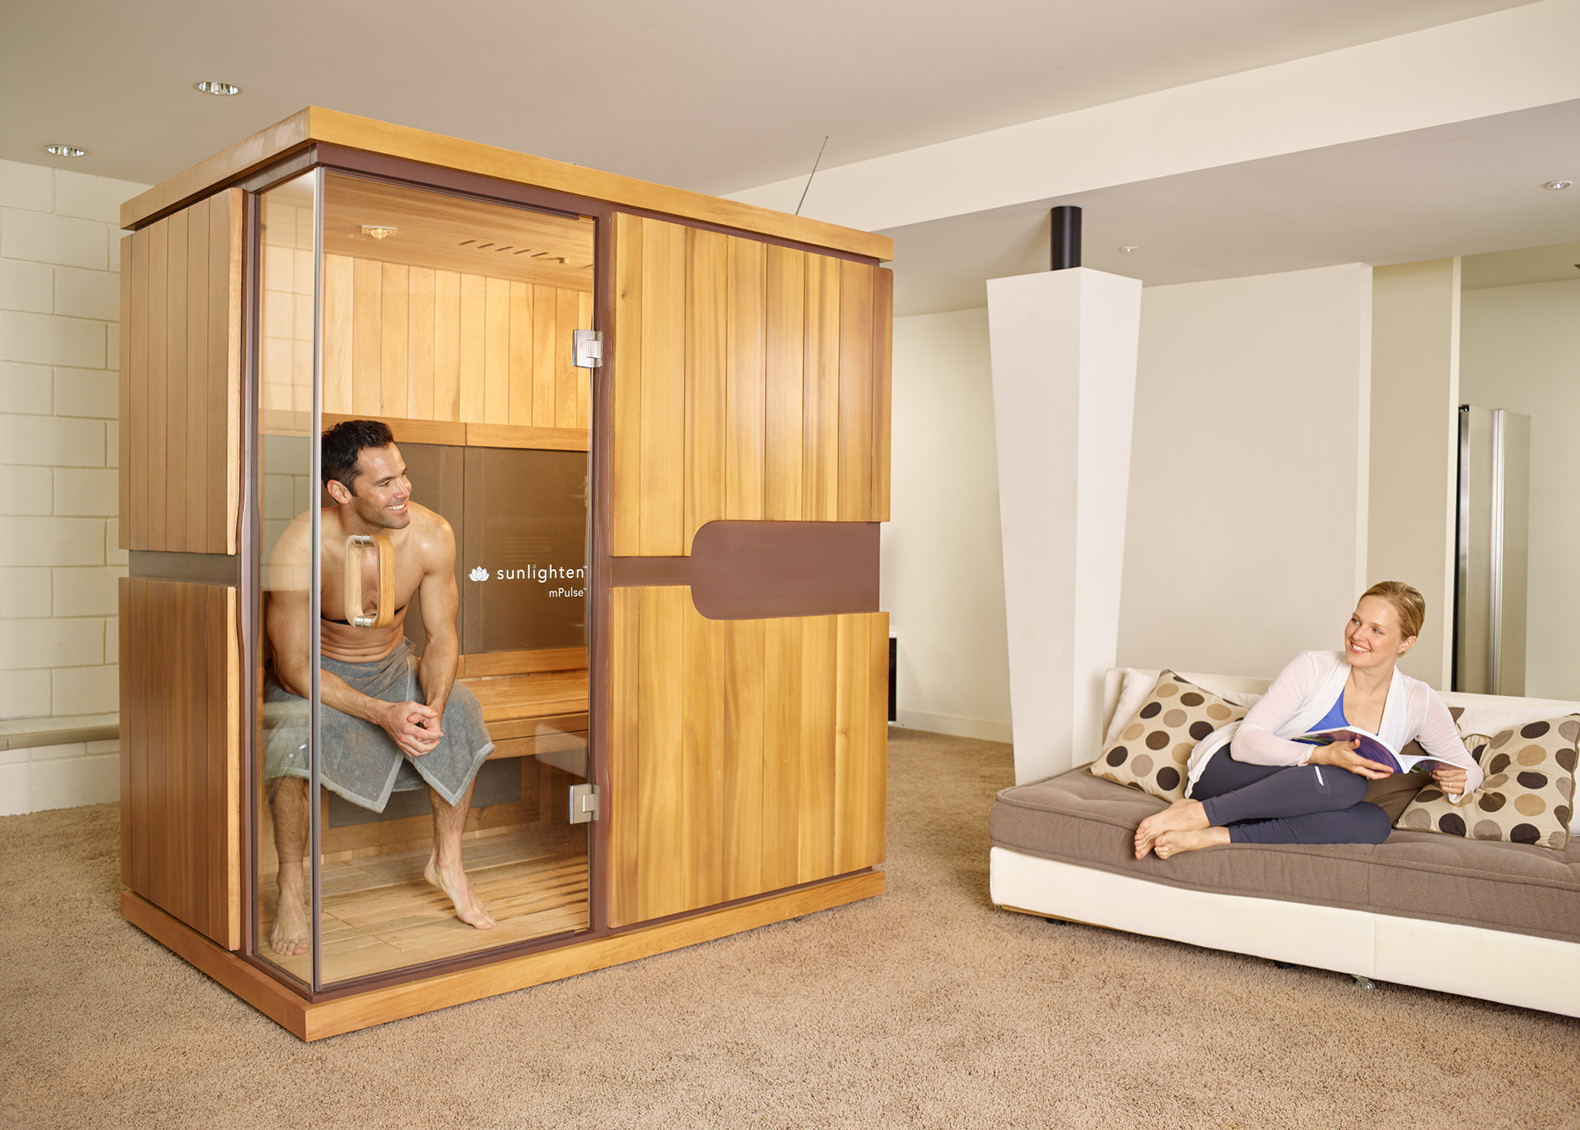 Sunlighten Saunas Use Infrared Therapy To Lower Blood